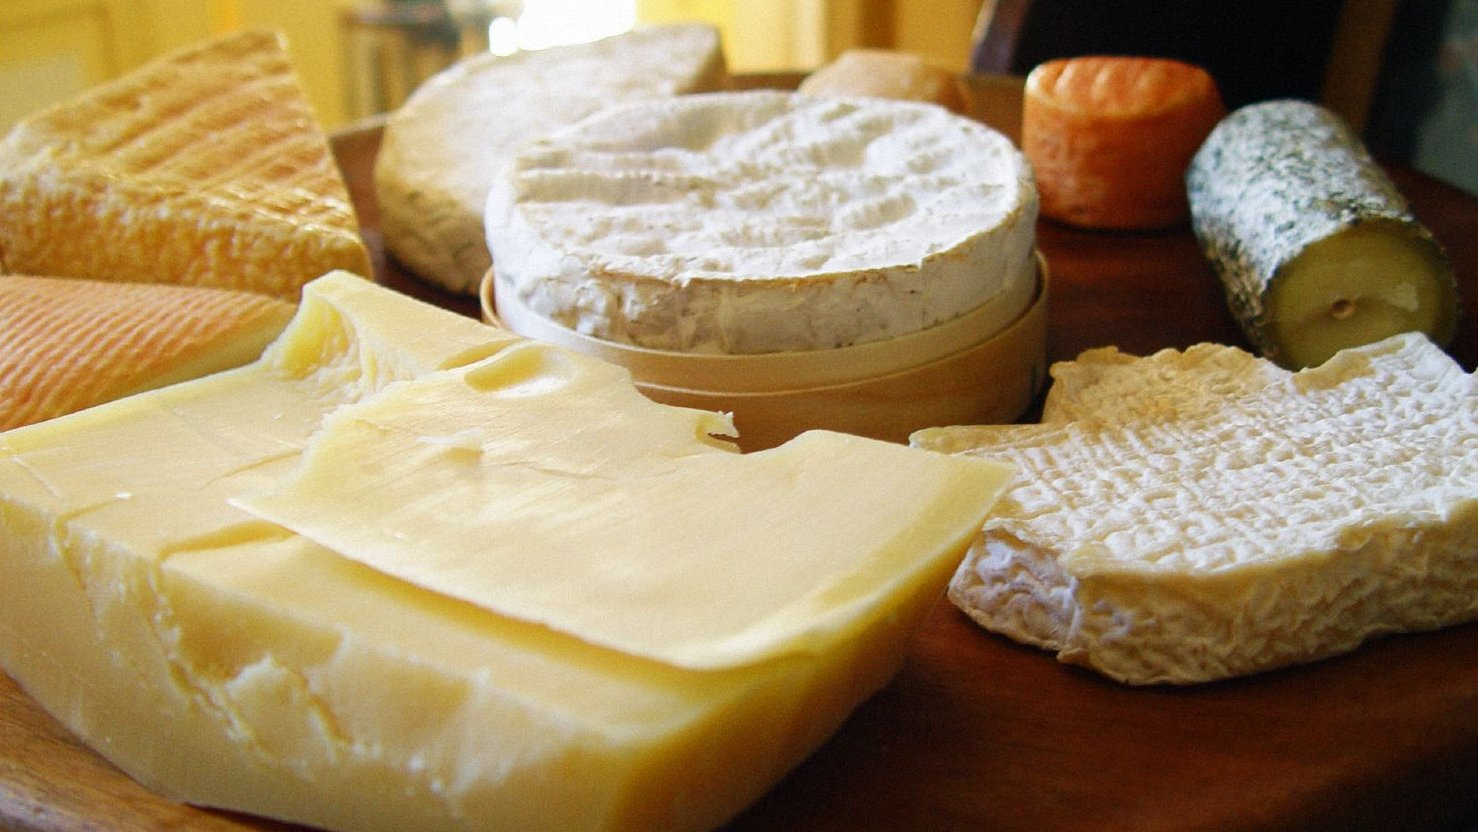 Cheese could reduce your diabetes risk gizmodo australia for All about french cuisine